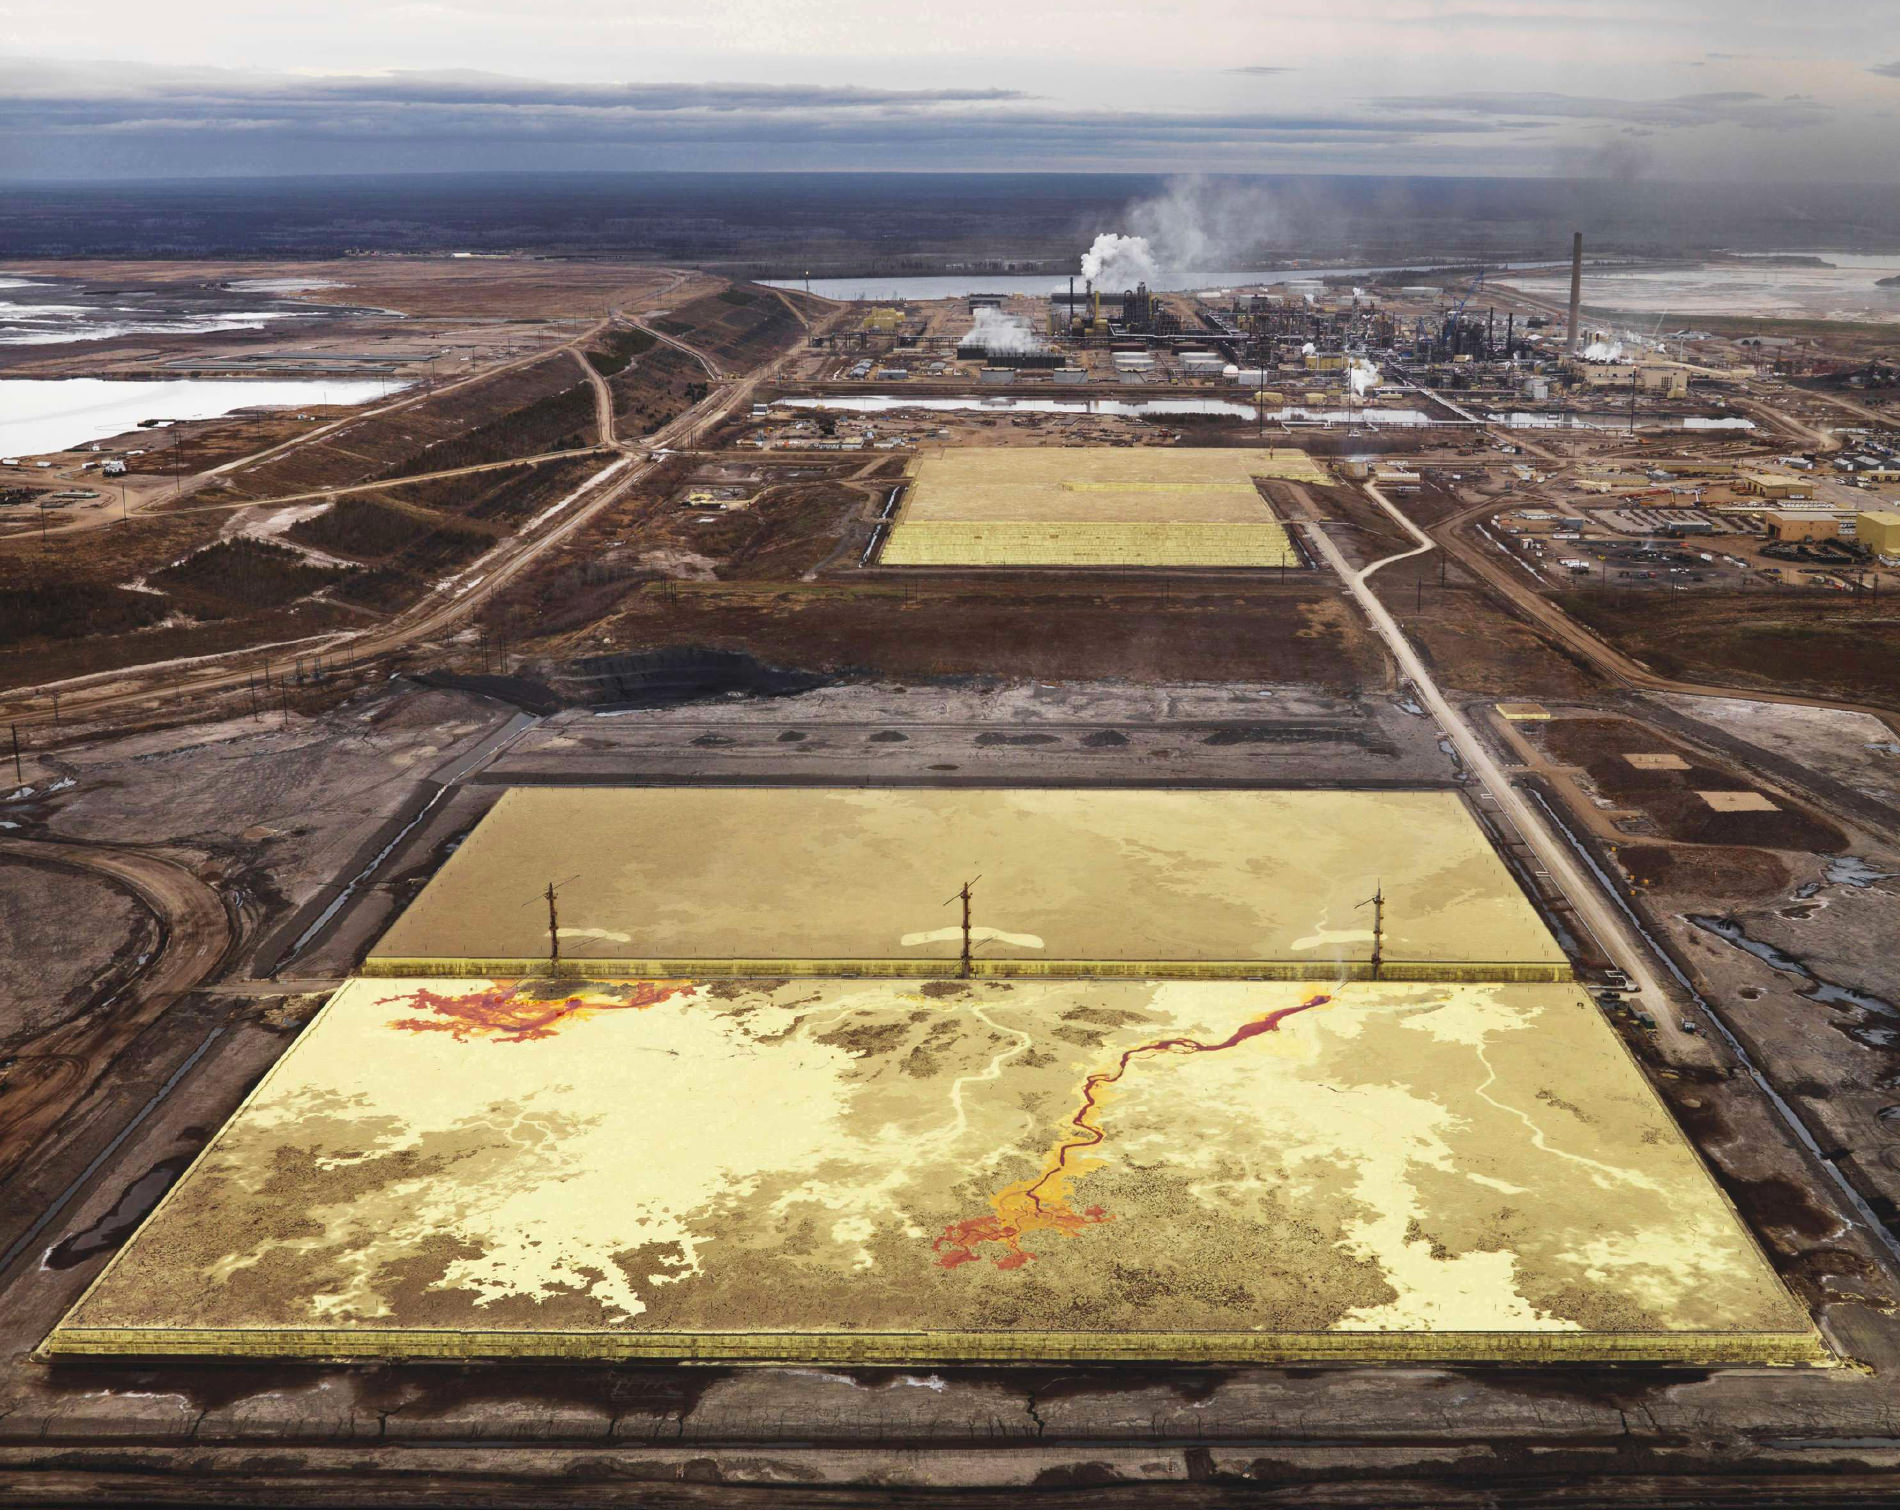 Edward Burtynski Photographie Alberta Oil Sands No6 Fort McMurray Alberta Canada 2007